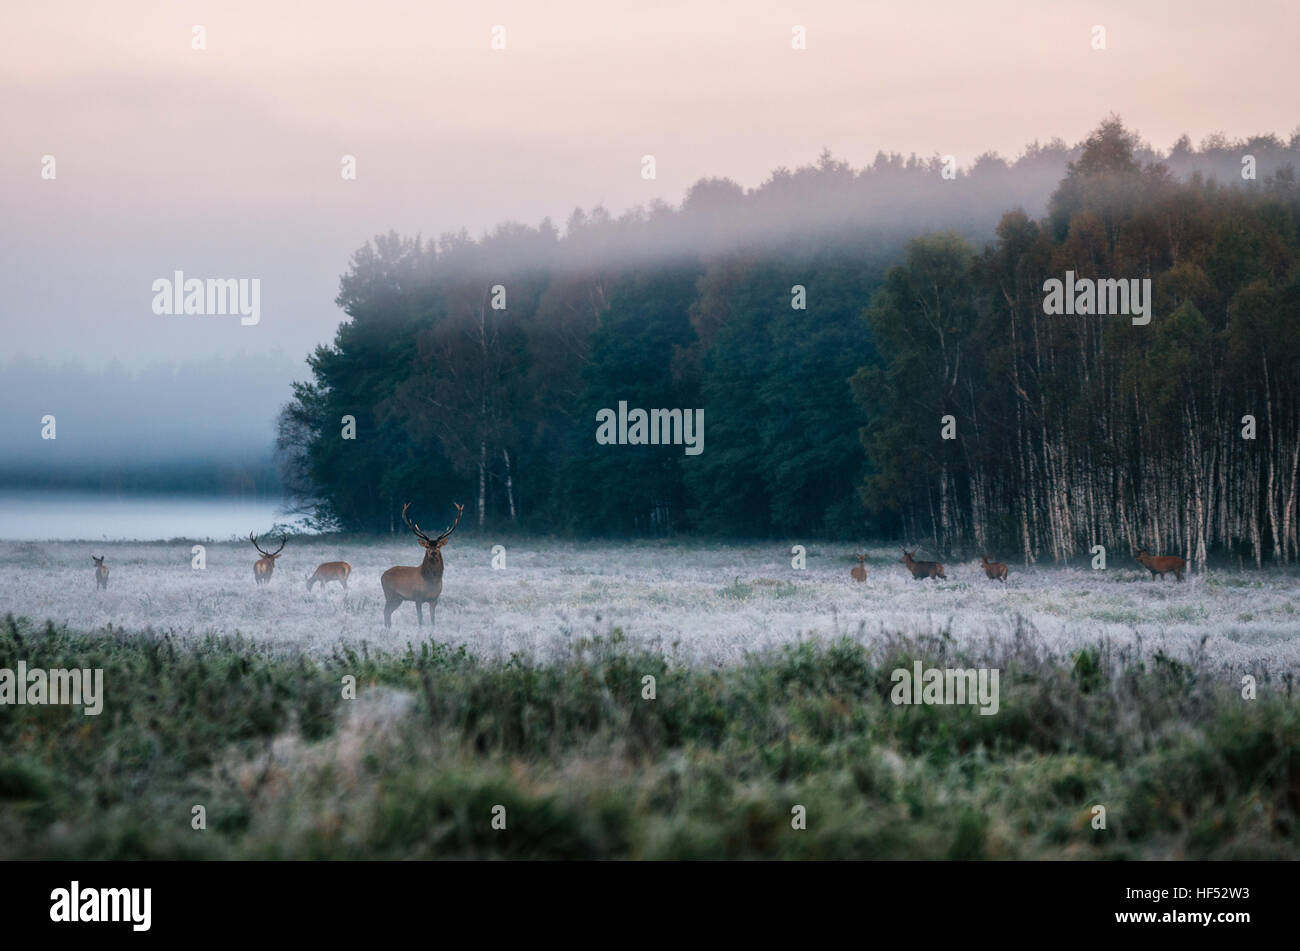 Red deer leader and herd on the snowy field against the misty forest  in the early morning during the rut in Belarus - Stock Image